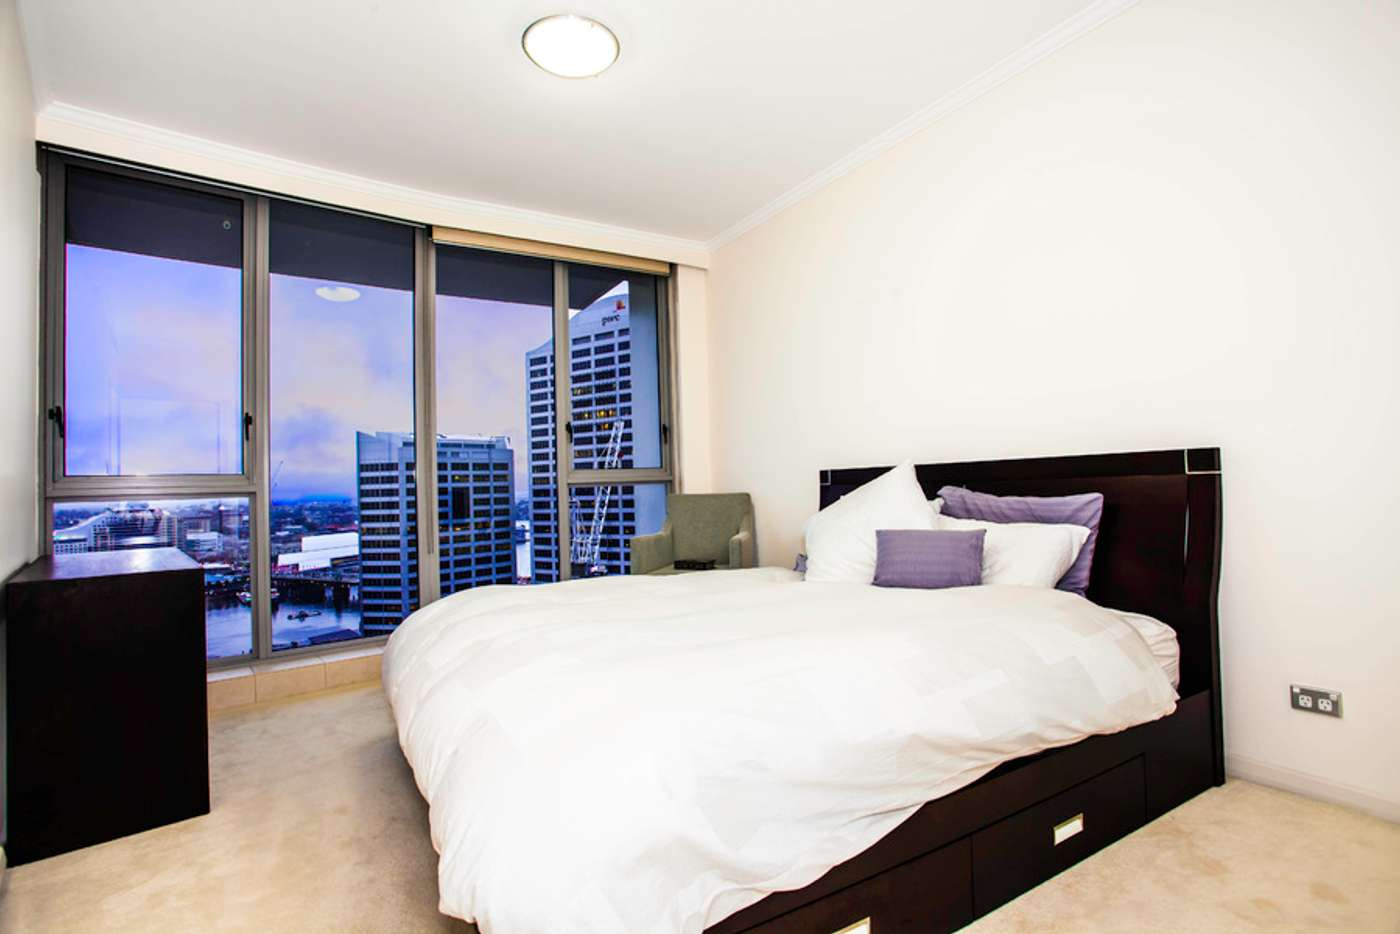 Sixth view of Homely apartment listing, 344/298 Sussex Street, Sydney NSW 2000